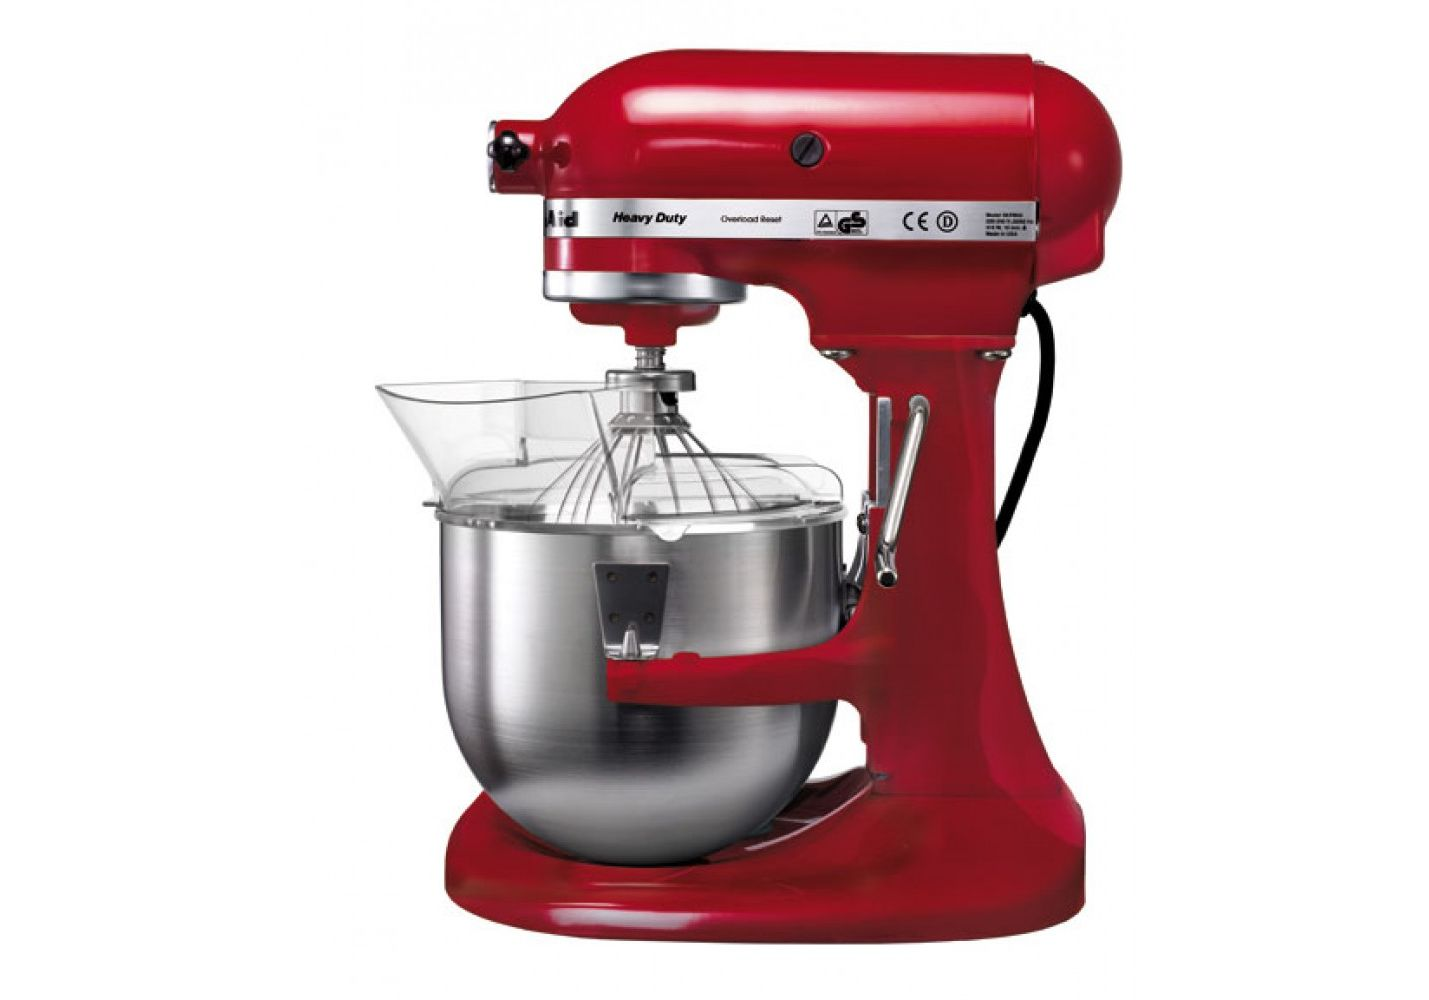 Küchenmaschine Bosch Vs Kitchenaid Kitchen Aid Kitchenaid 5kpm5eer Heavy Duty Küchenmaschine 315w 4 8l Empi